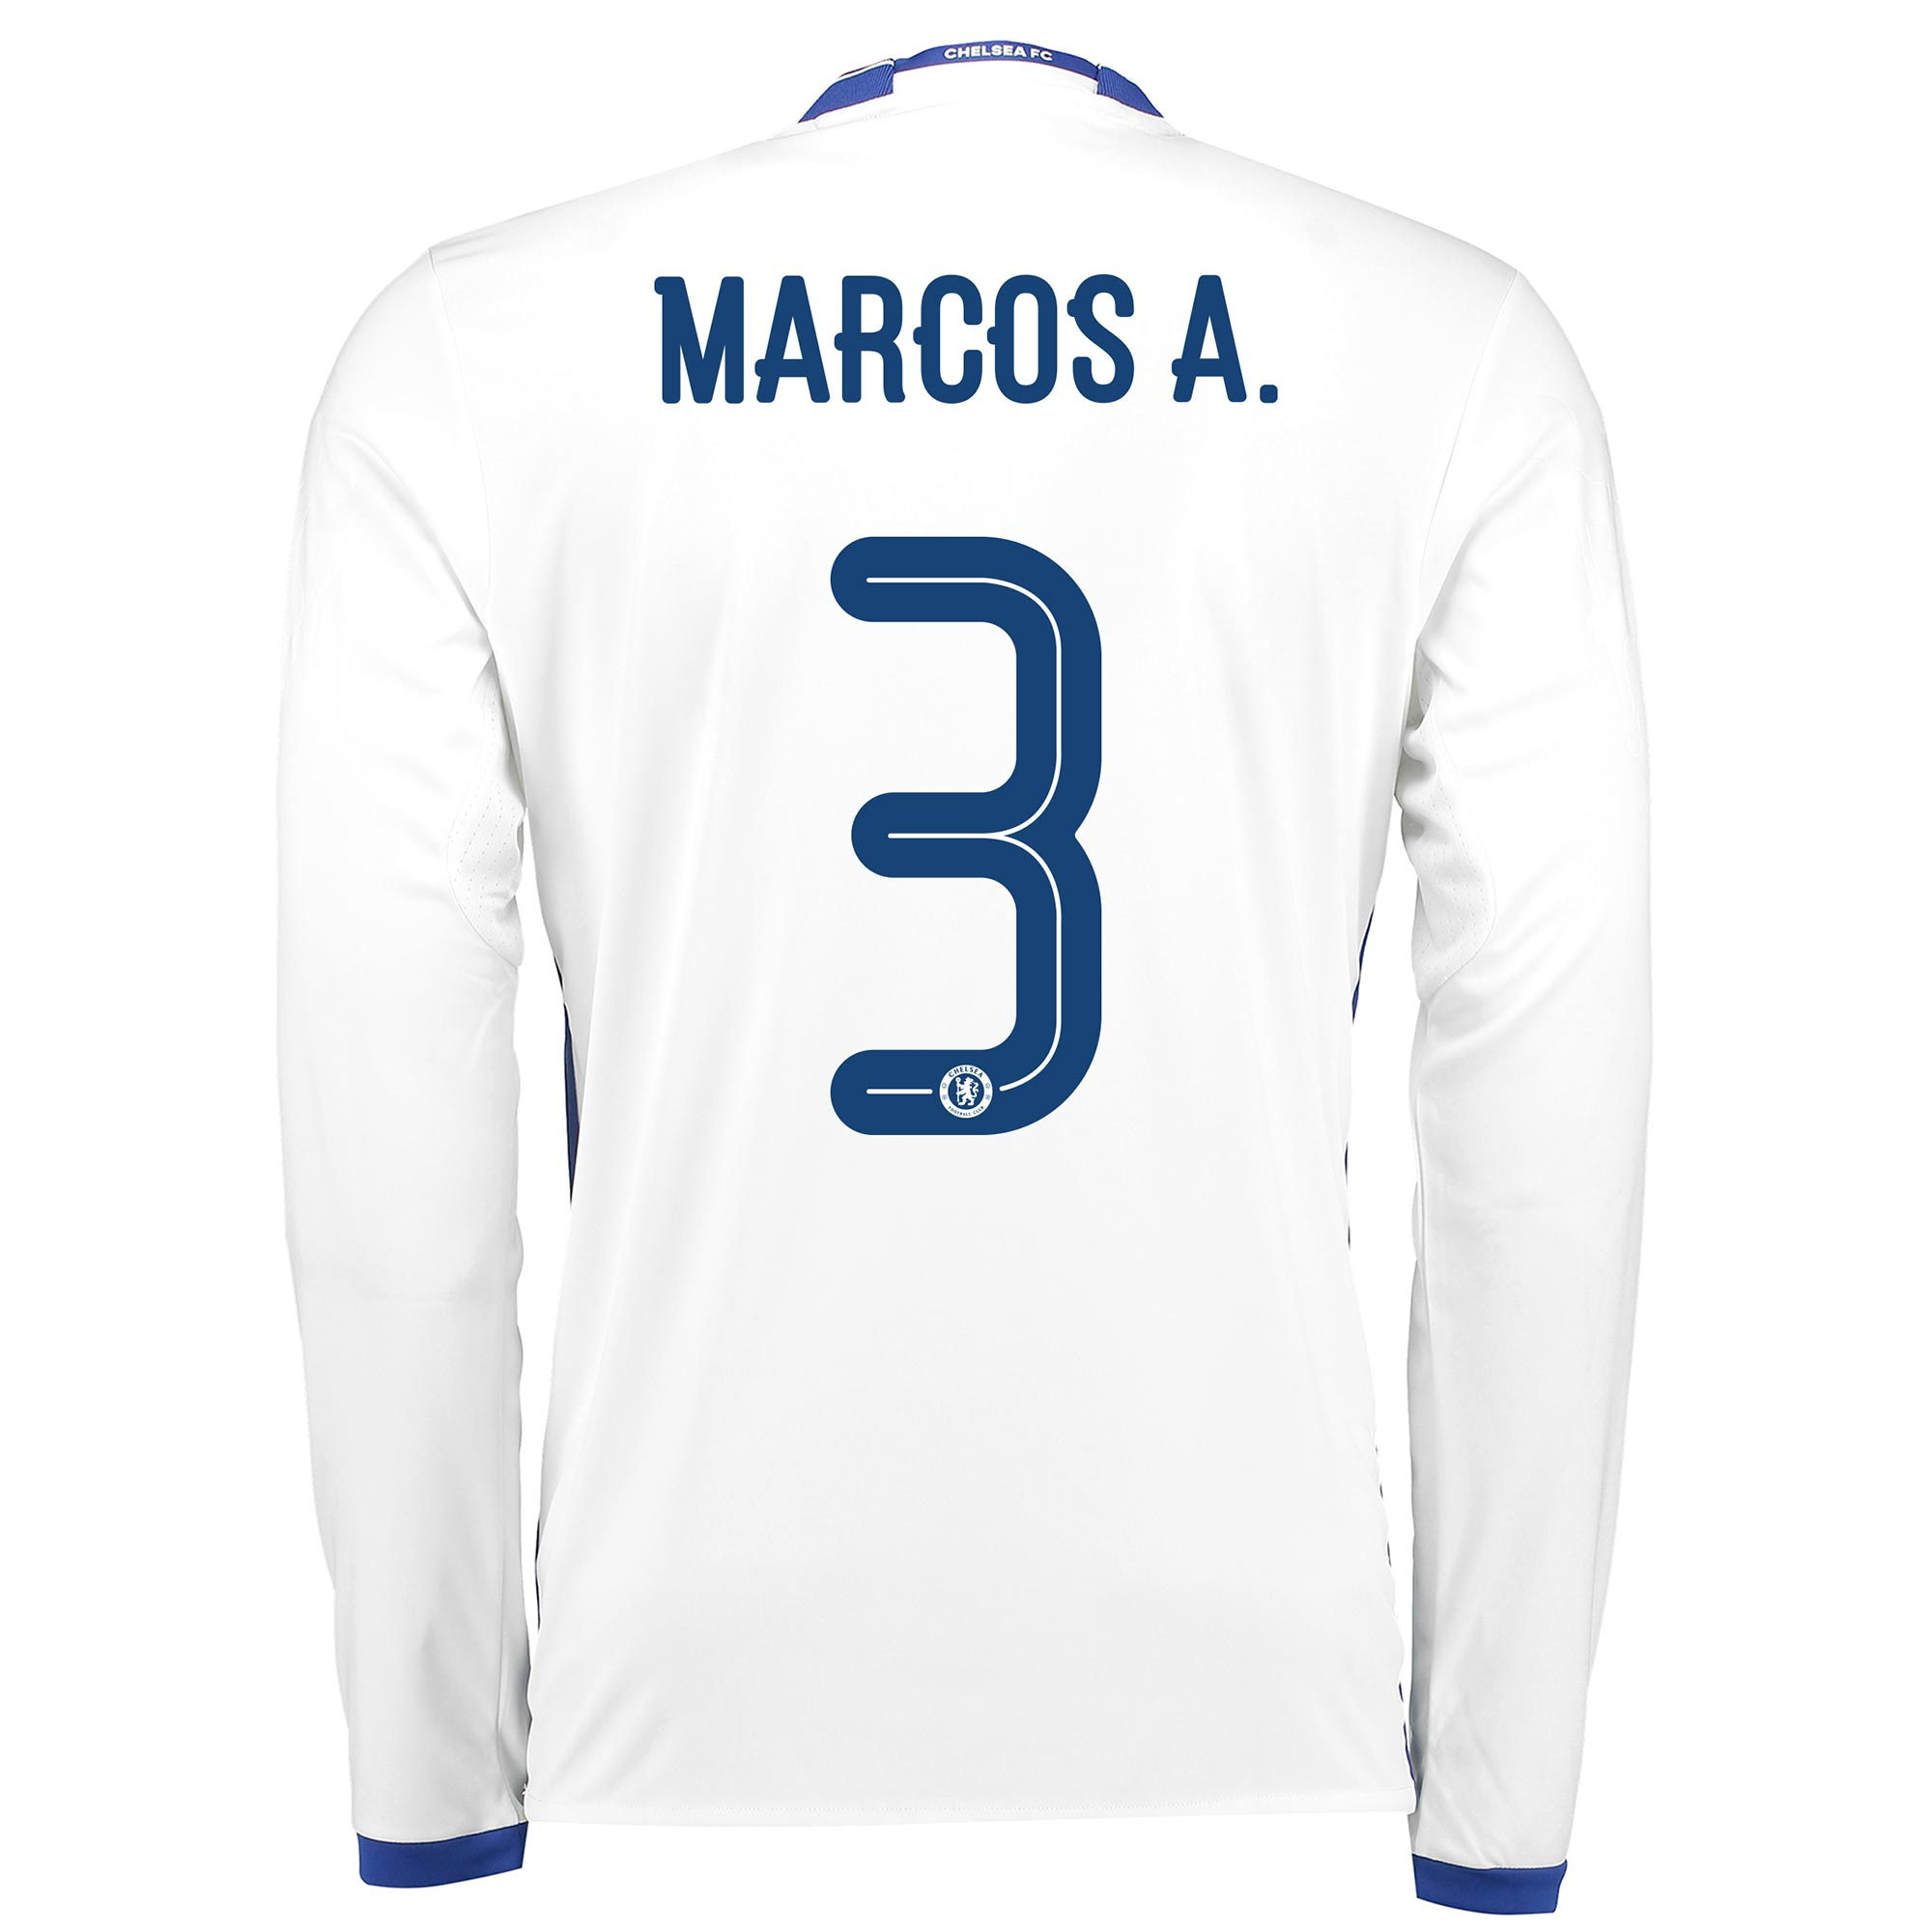 Chelsea Linear Third Shirt 16-17 - Long Sleeve with Marcos A. 3 printi